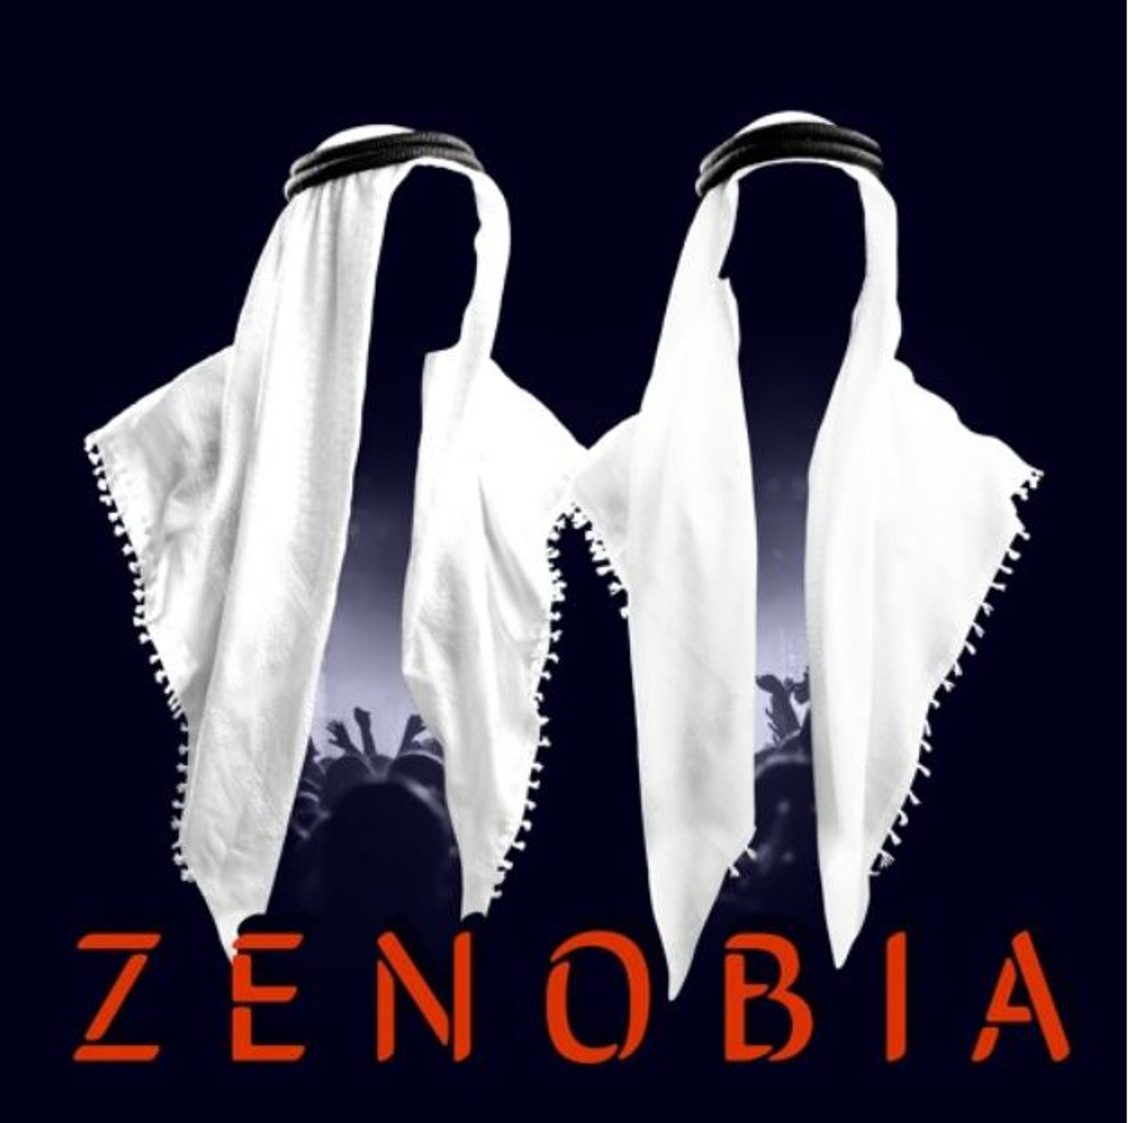 Zenobia offers electronics from Haifa (Palestina) - debut EP out now